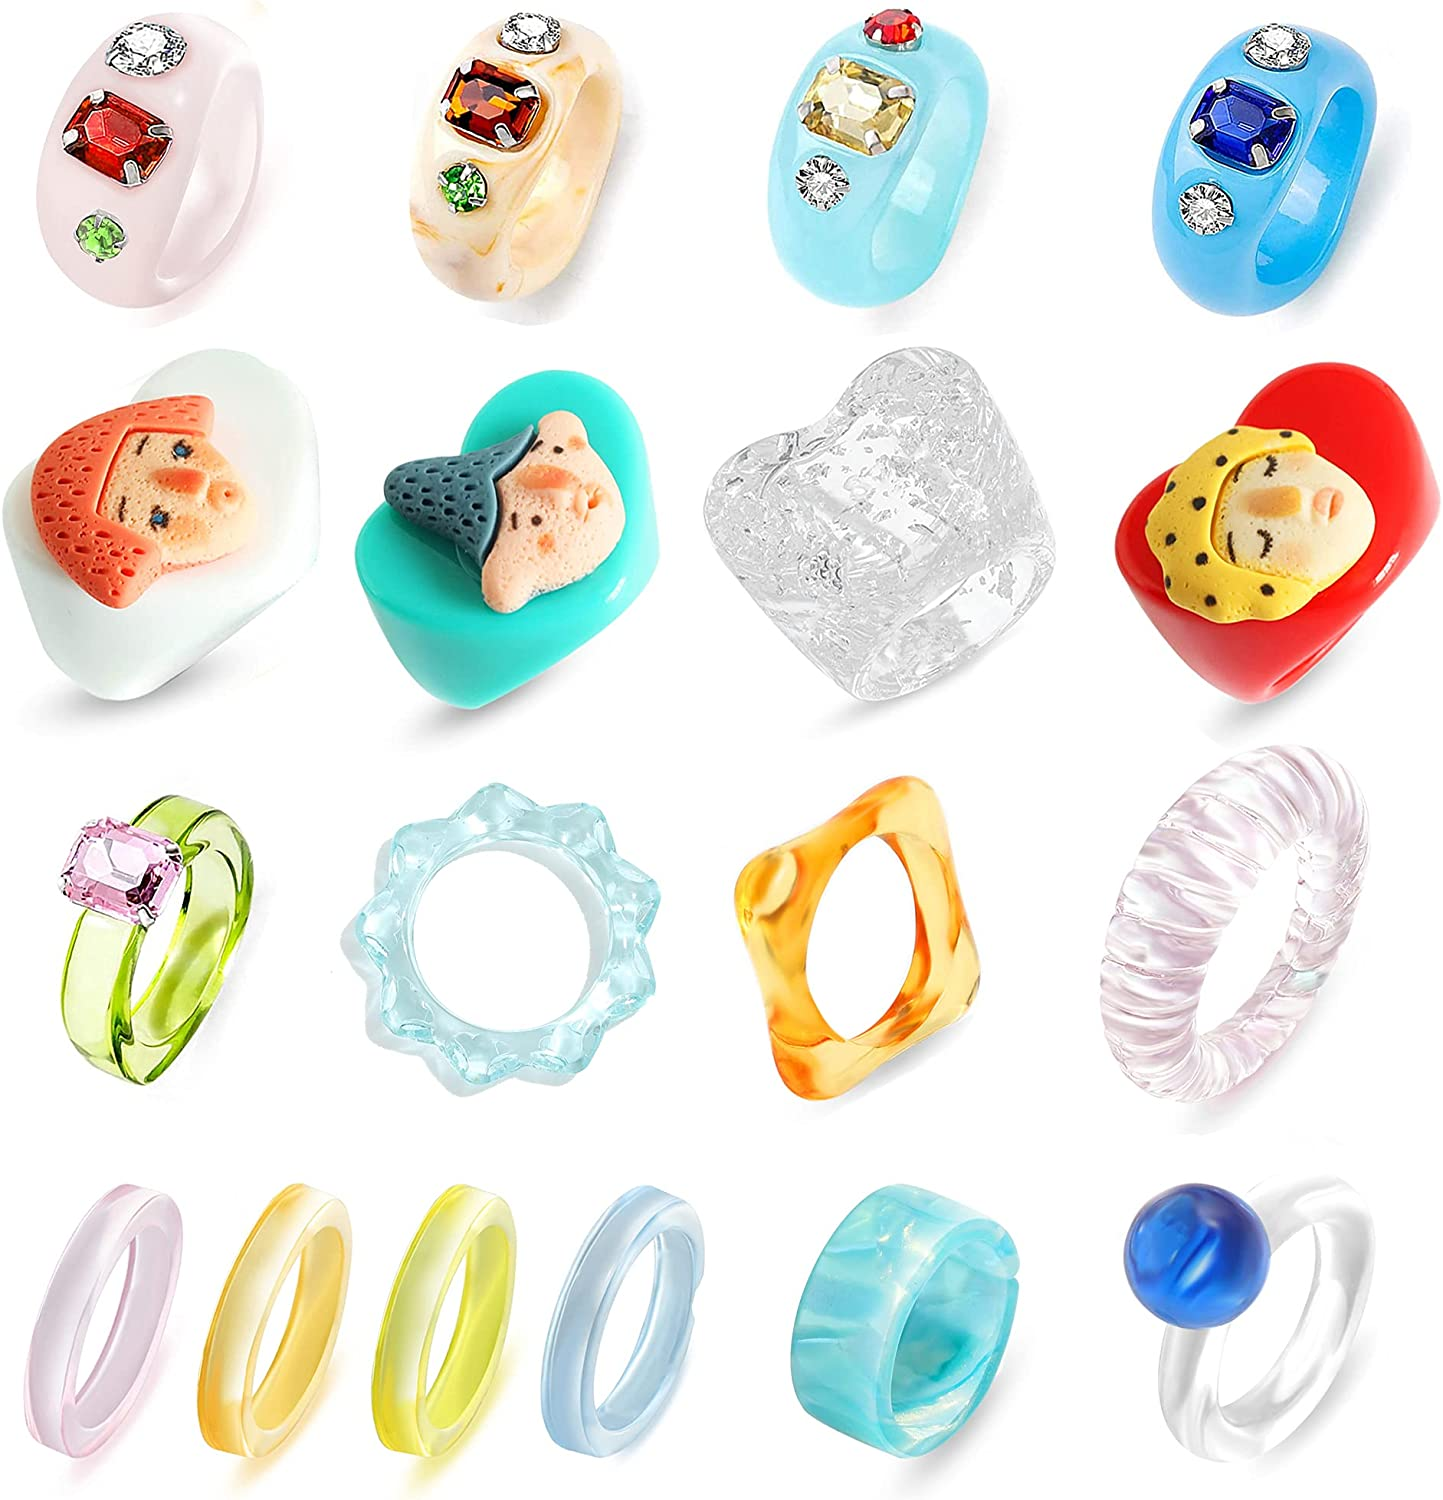 Dvacaman 16/18/20Pcs Y2K Style Retro Chunky Acrylic Resin Rings Evil Eye Ring Cute Stackable Transparent Plastic Silicone Resin Band Ring Statement Jewelry Colorful Unique Square Gem Ring for Women Teen Girls